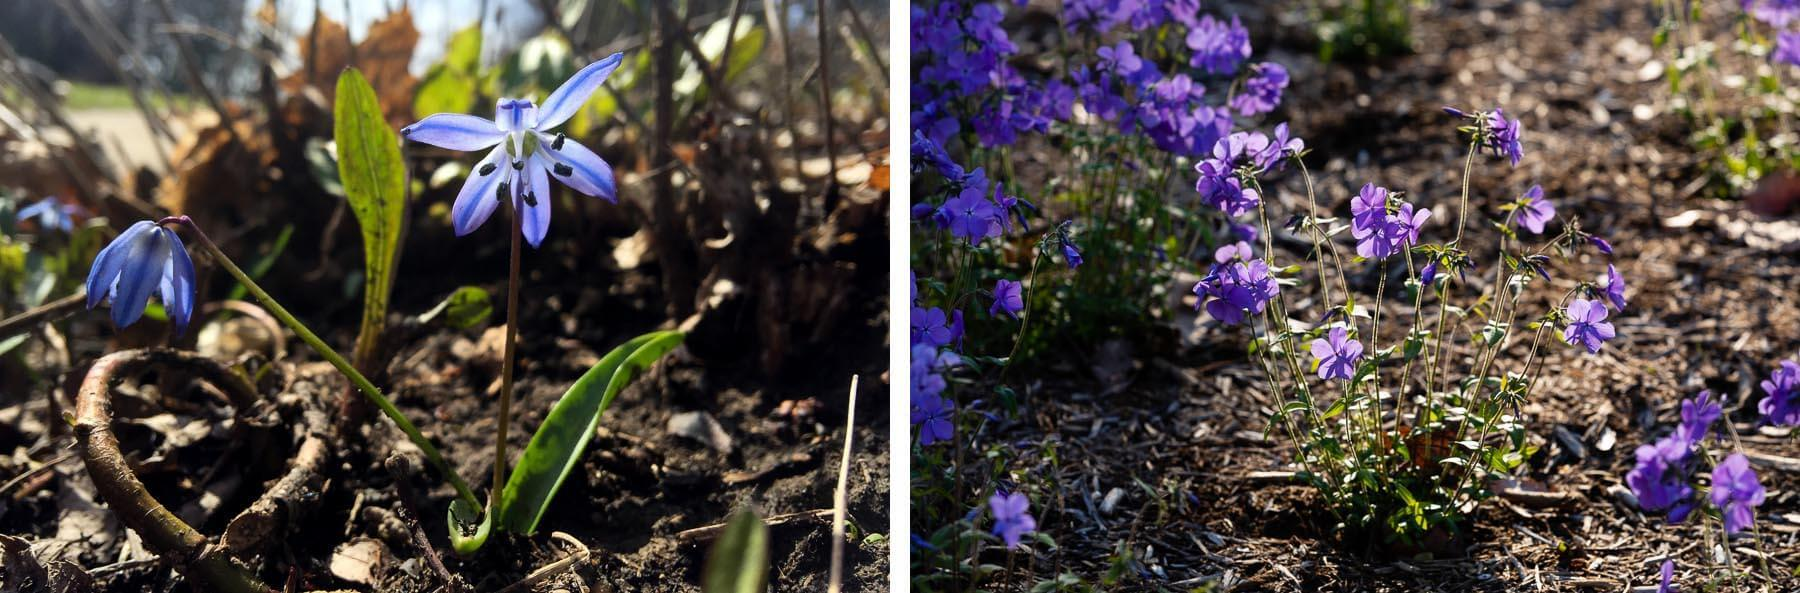 Small plants with purple flowers